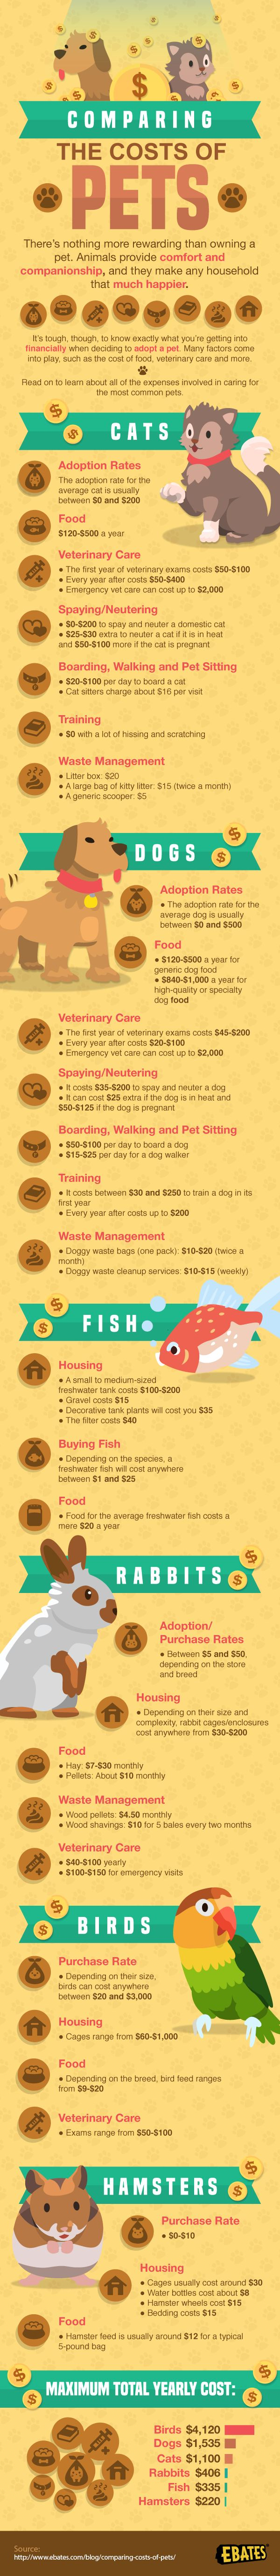 Comparing the cost of pets